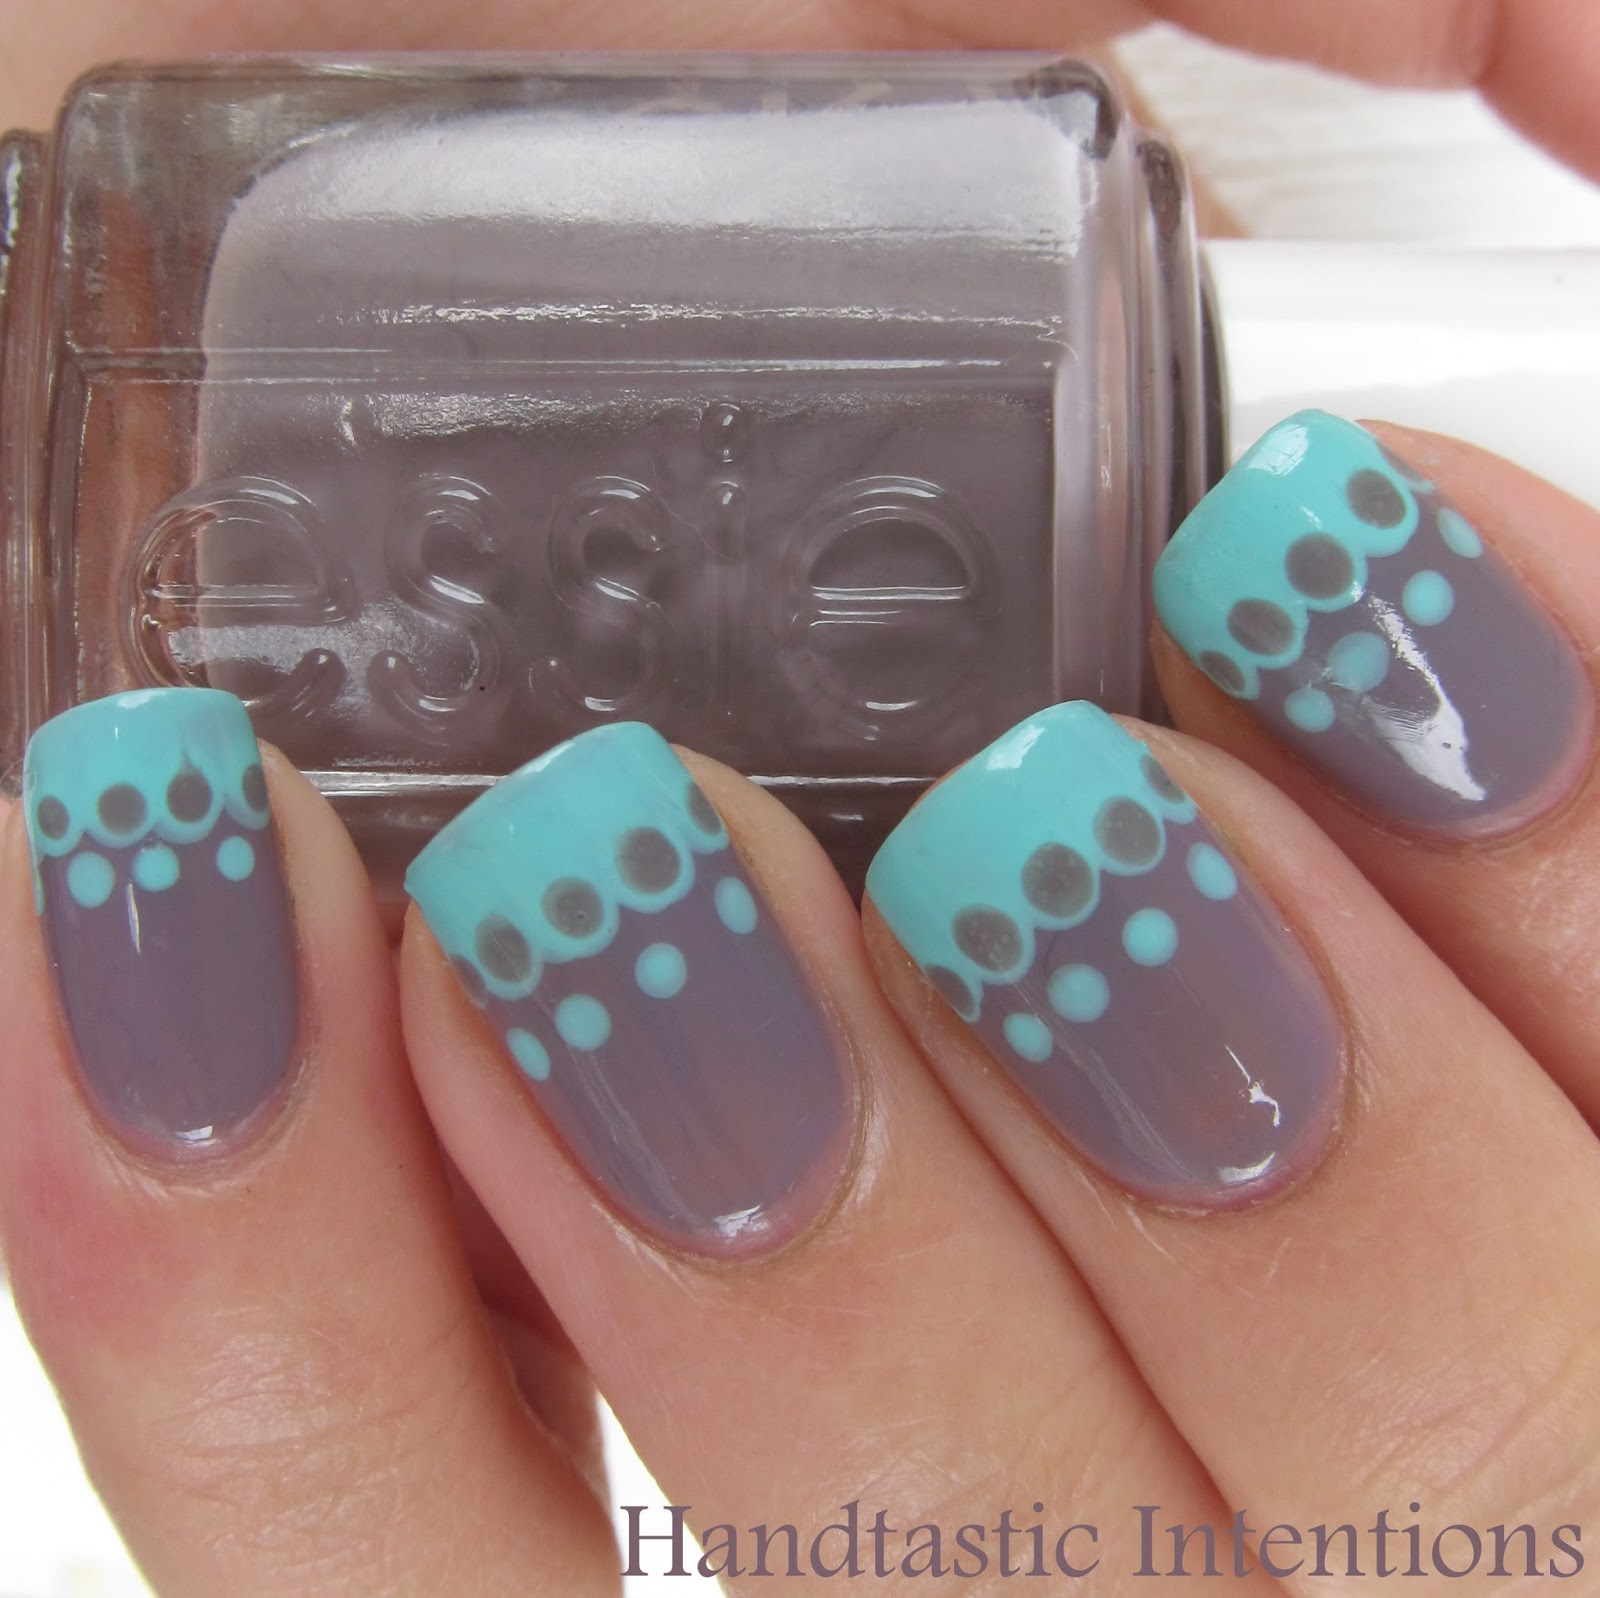 Handtastic Intentions Nail Art Simple Lace French Tip